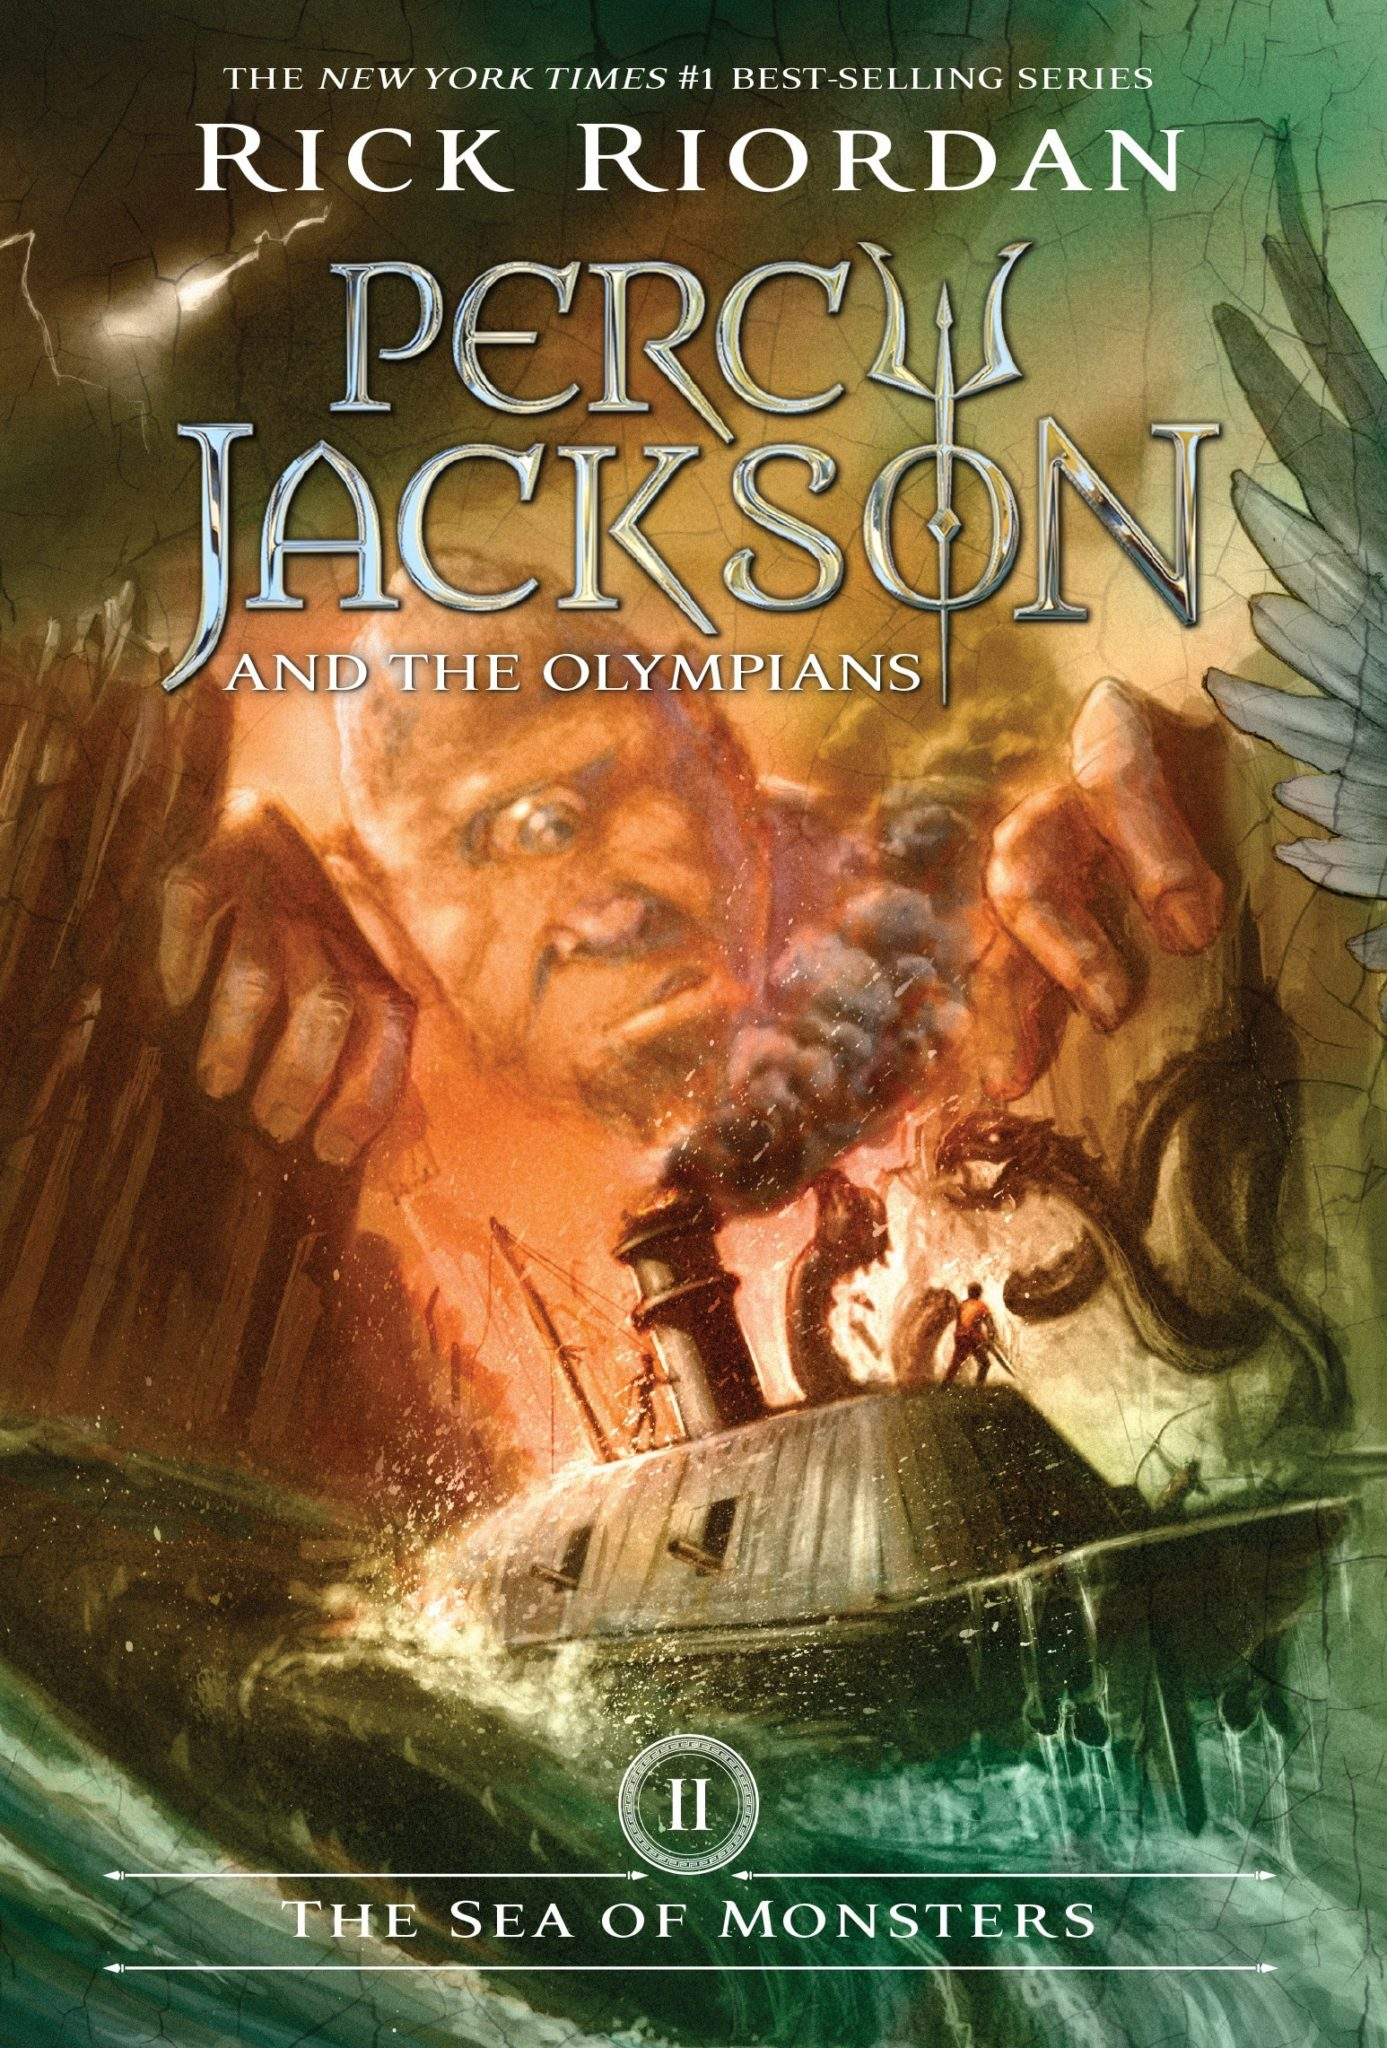 Percy Jackson books 2